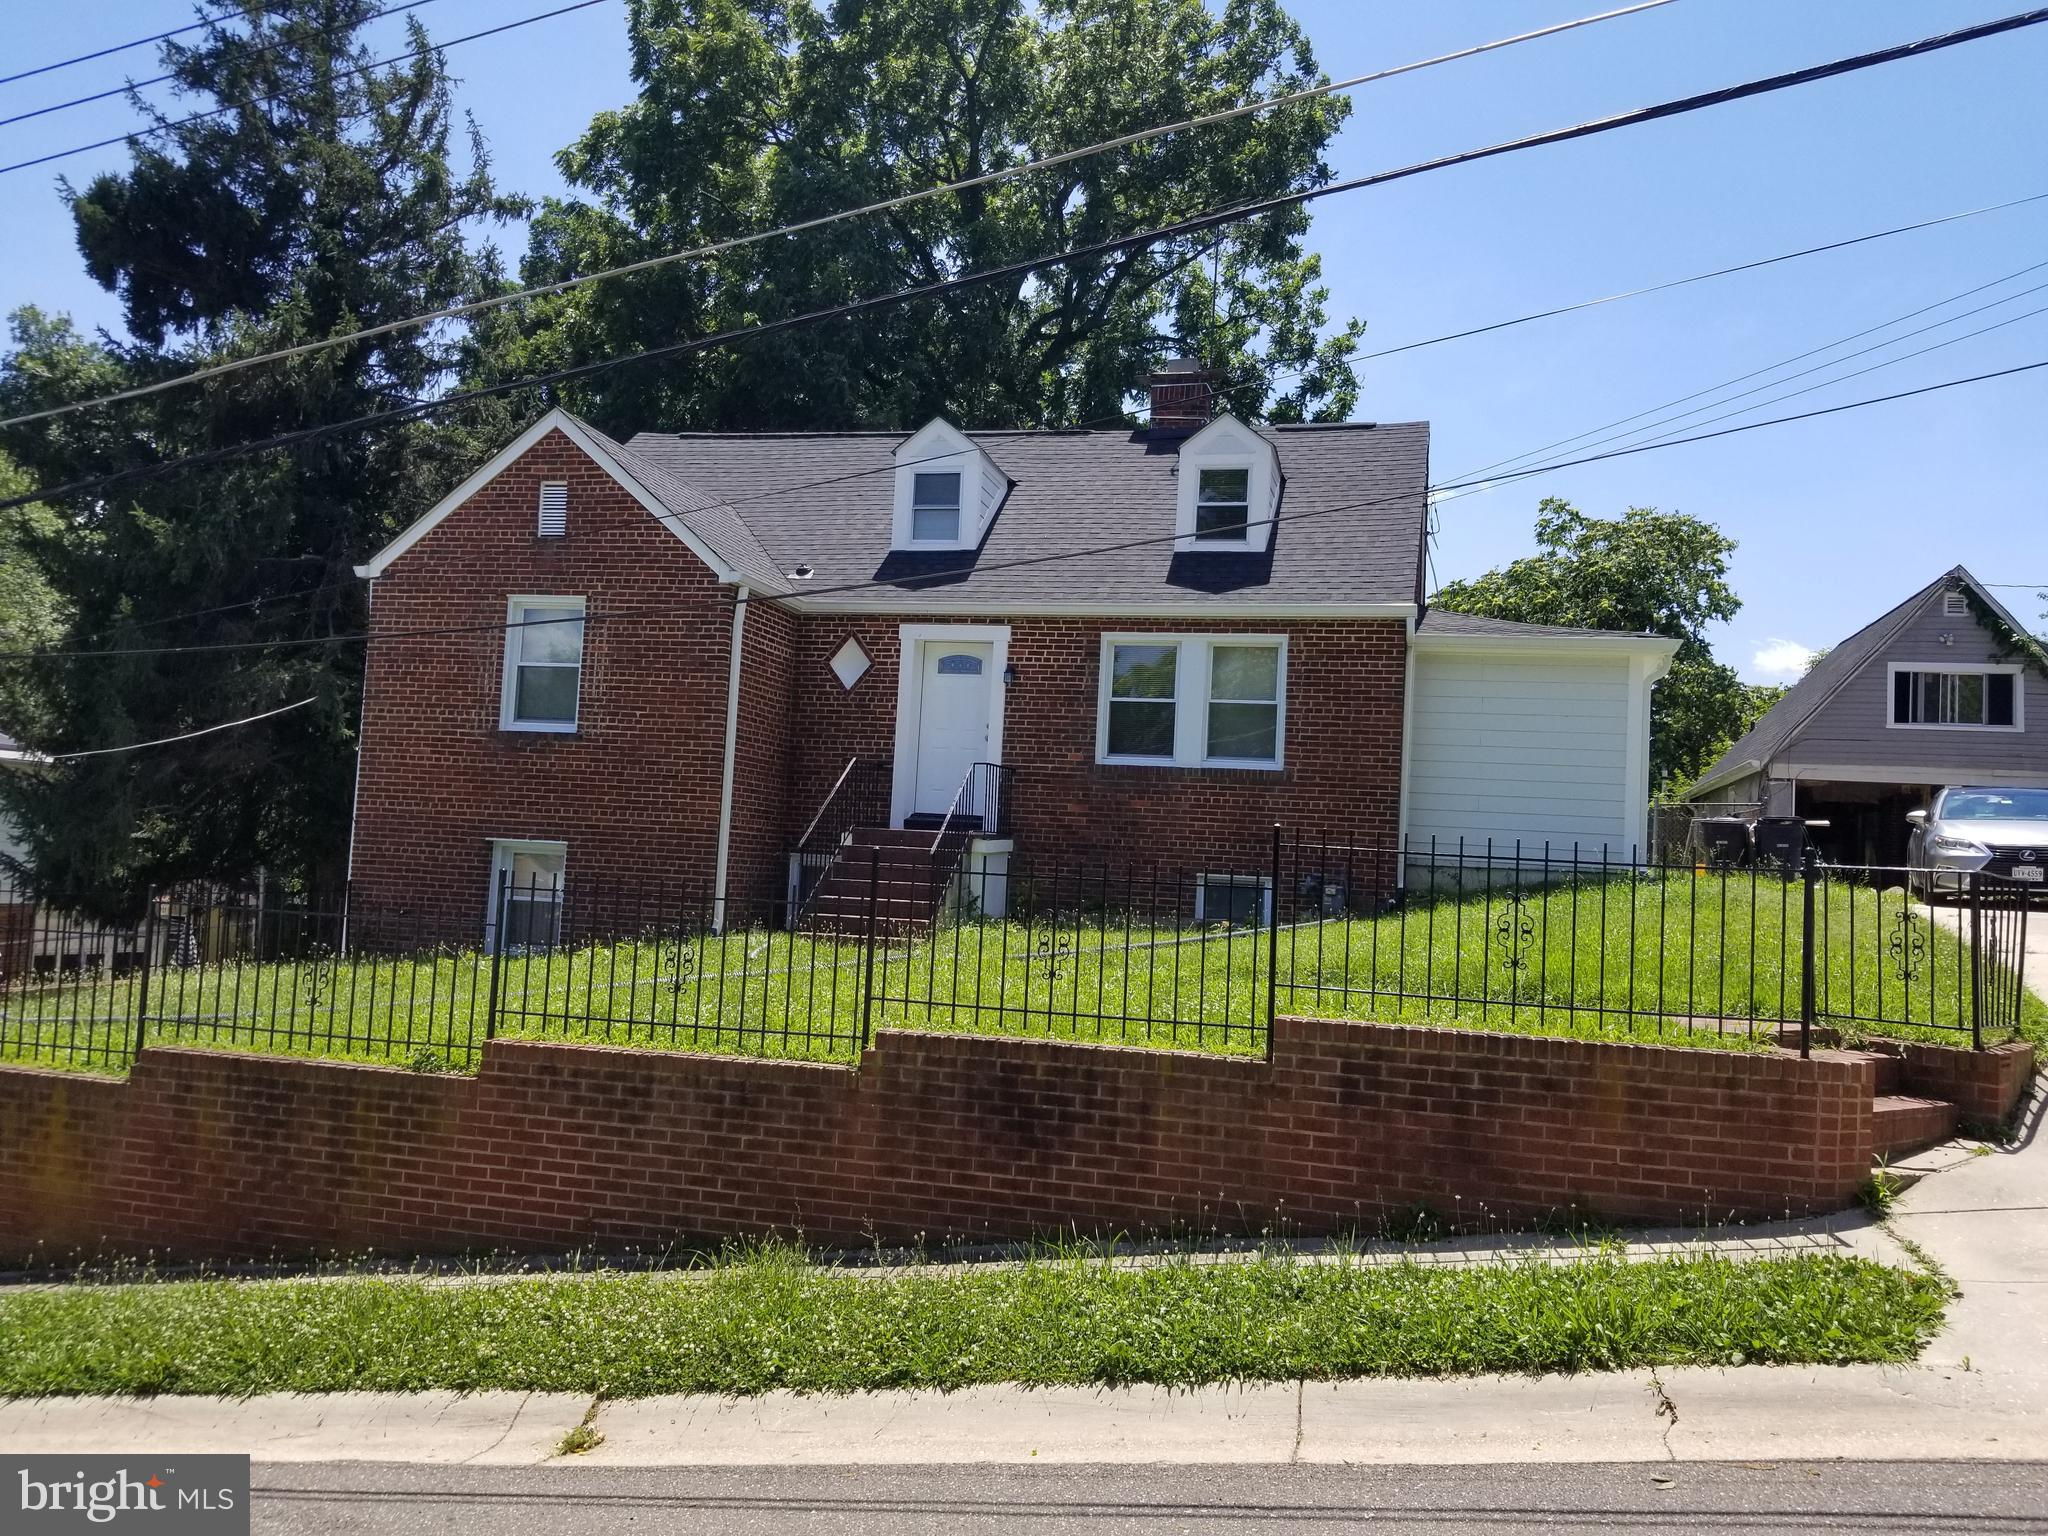 4203 BYERS STREET, CAPITOL HEIGHTS, MD 20743